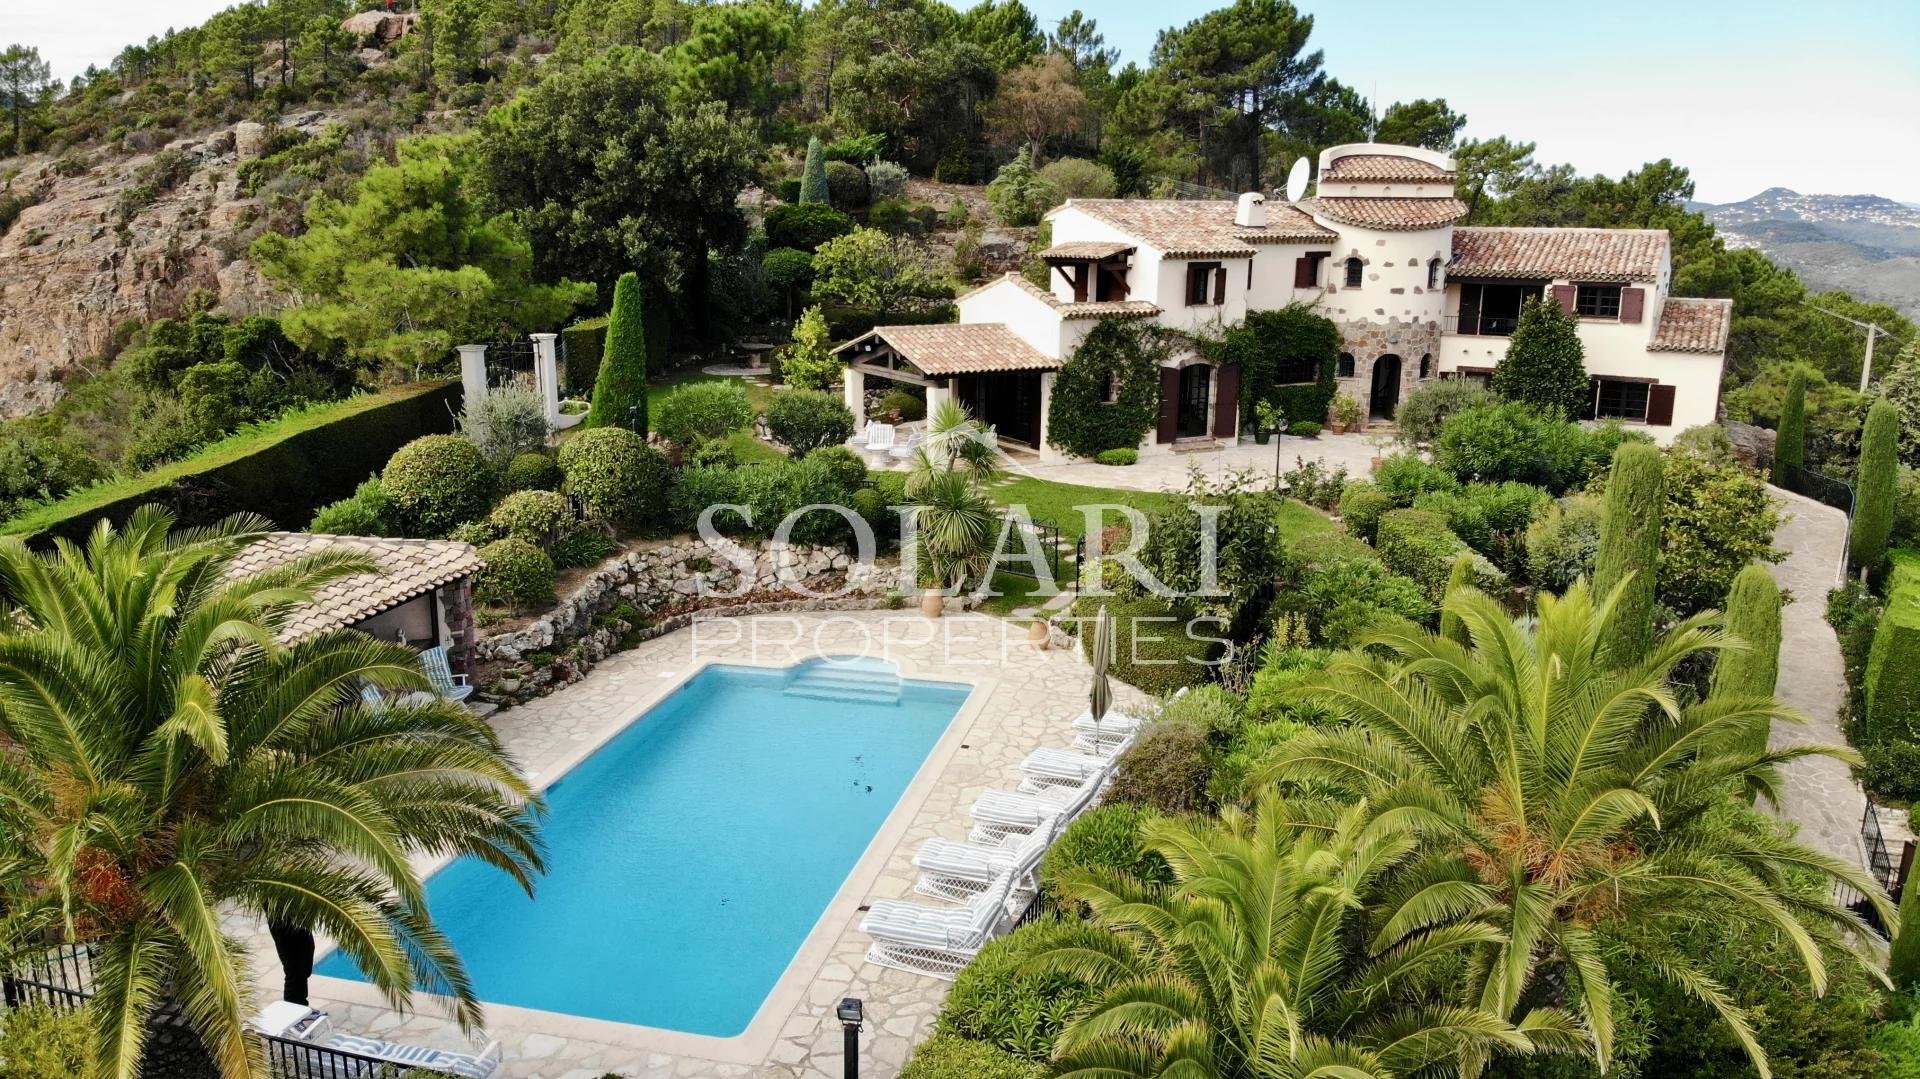 Villa overnhanging the Bay of Cannes - Theoule